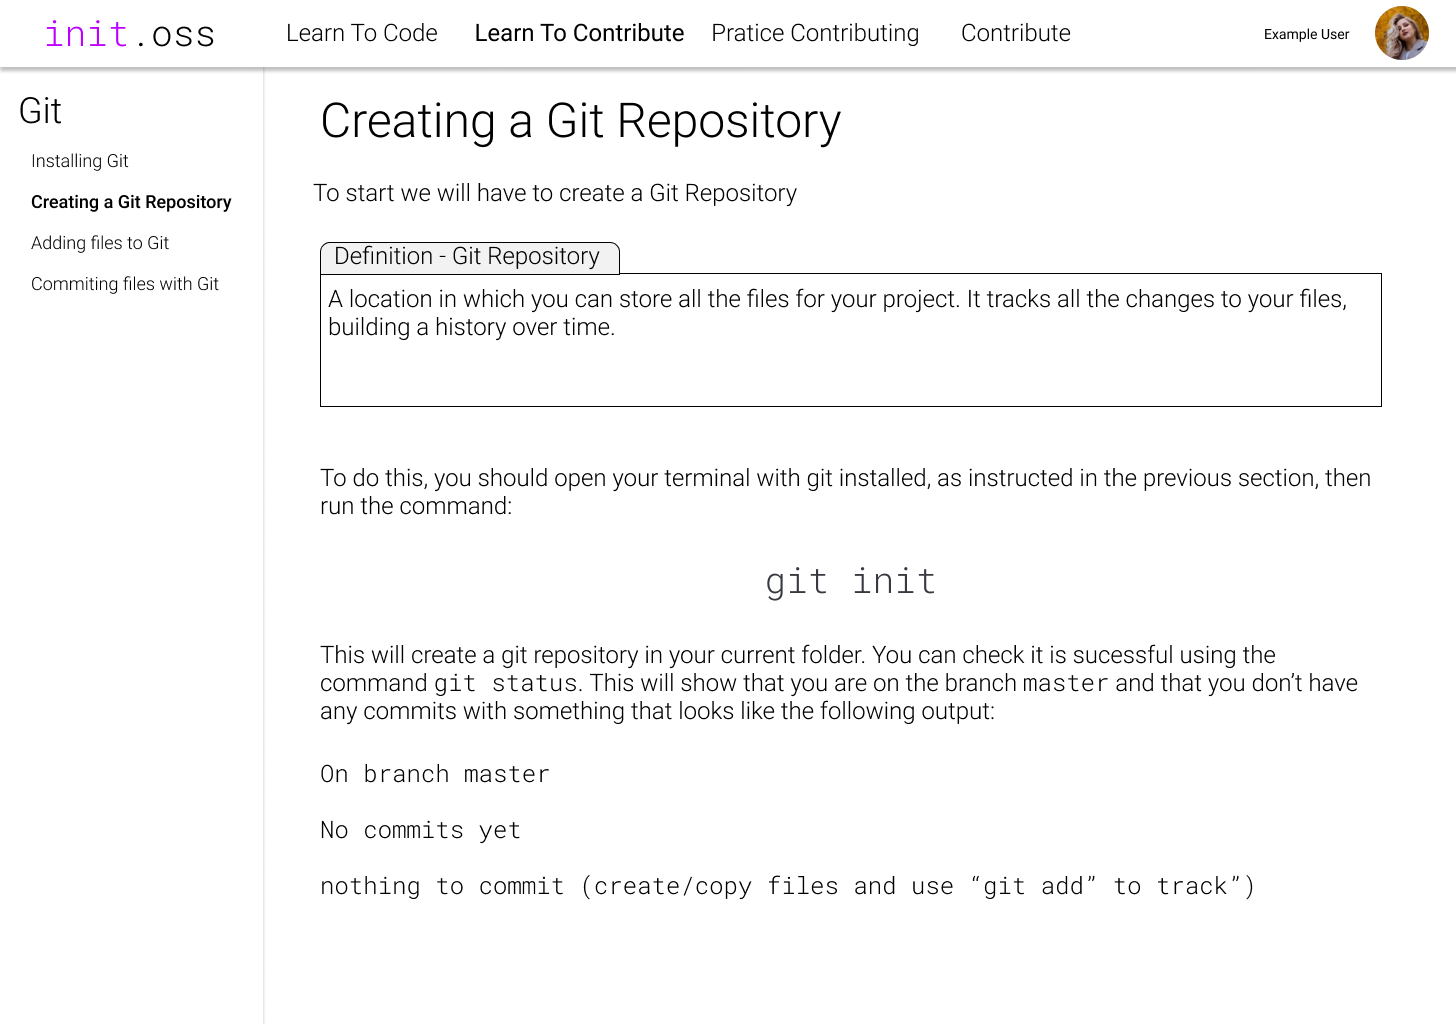 An example page for learning to contribute